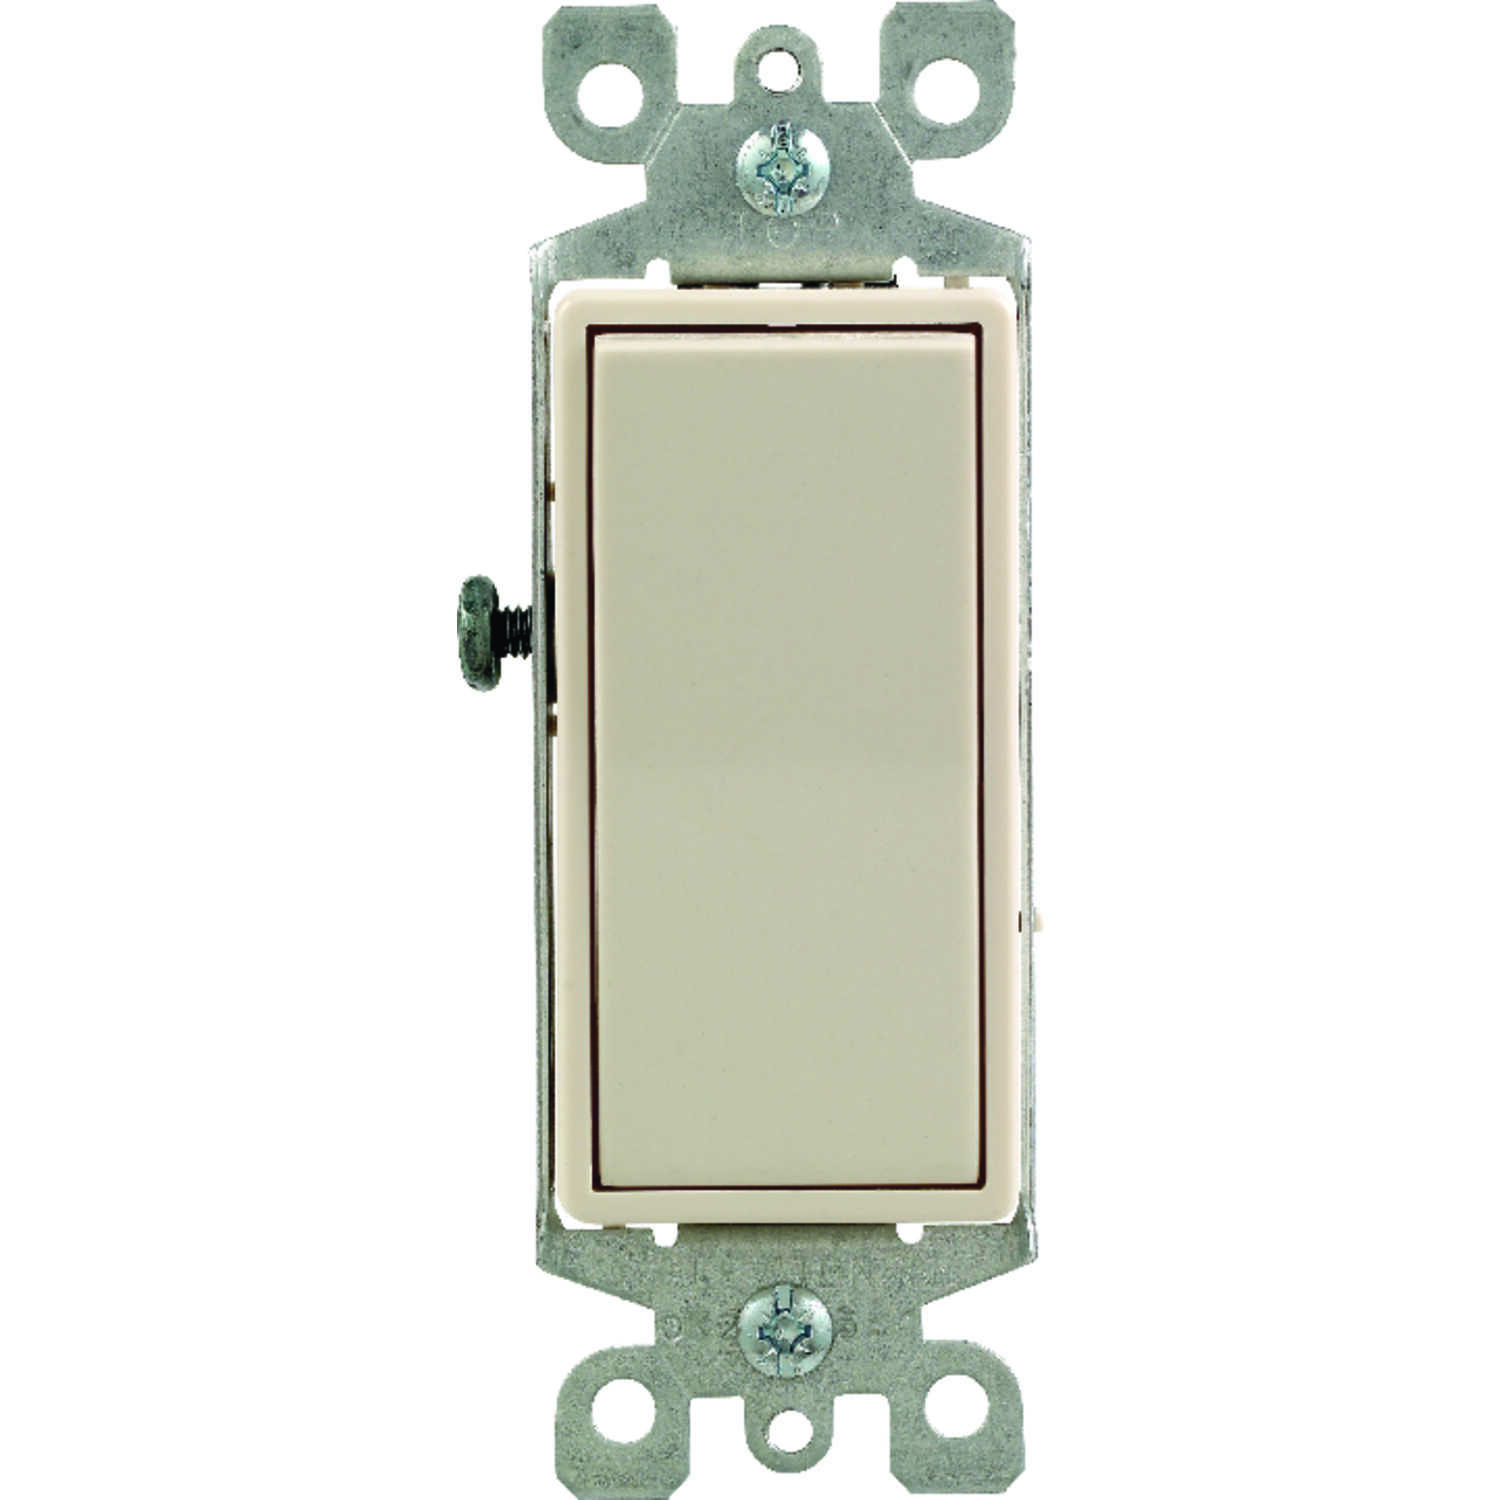 Leviton  Decora  15 amps Rocker  Switch  Light Almond  1 pk